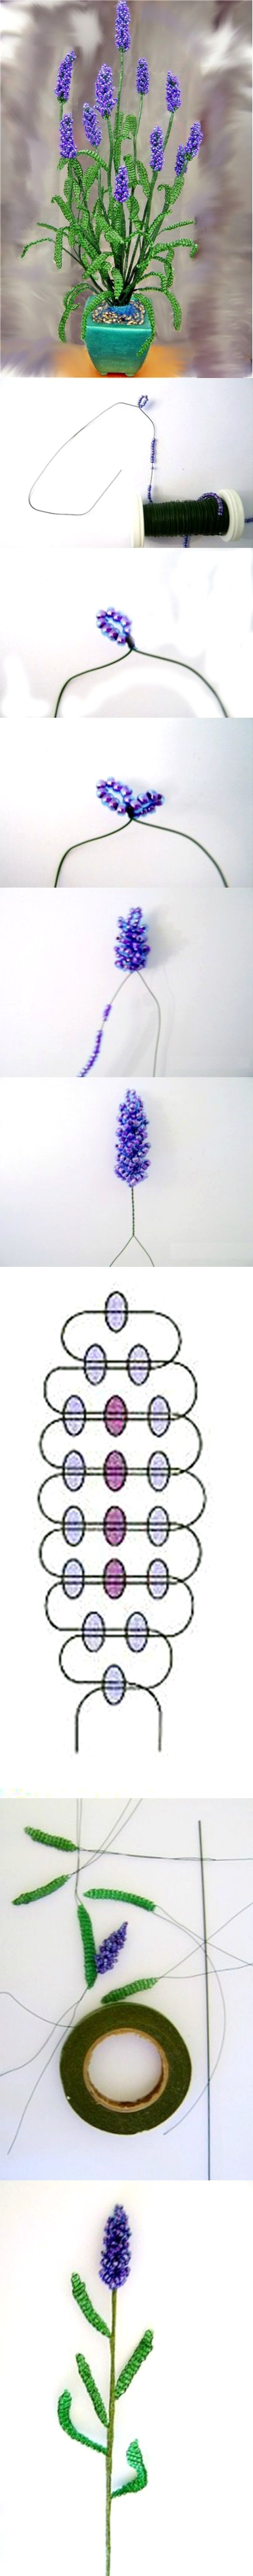 bead lavender tutorial